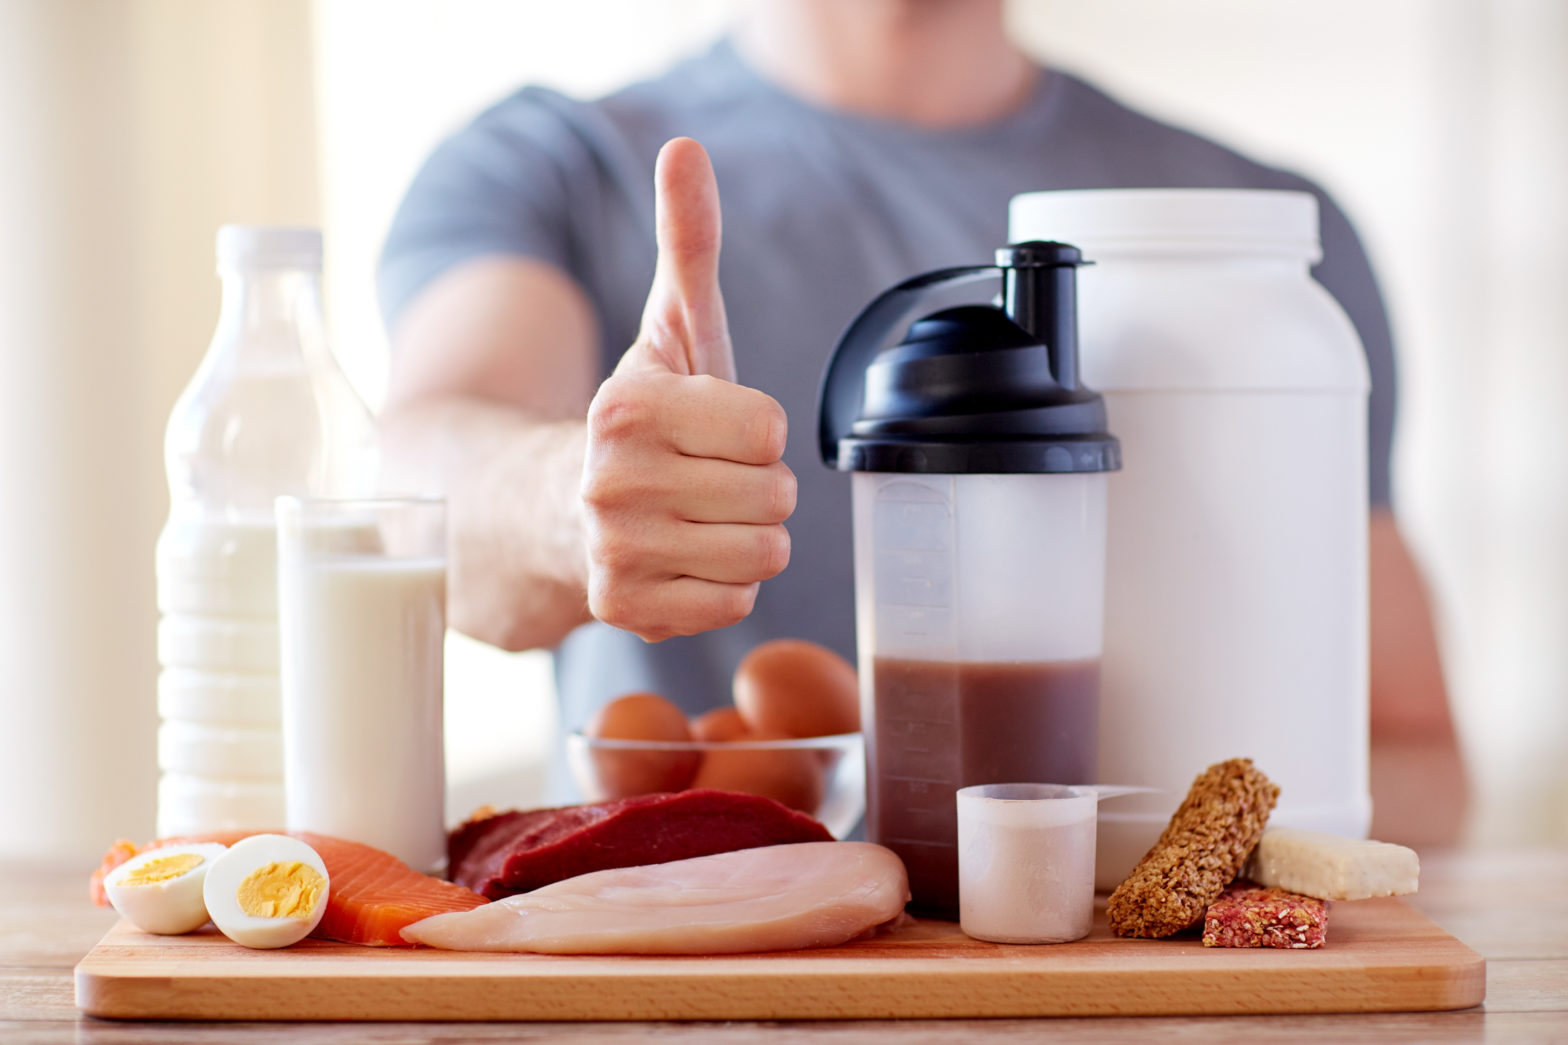 man with protein food showing thumbs up